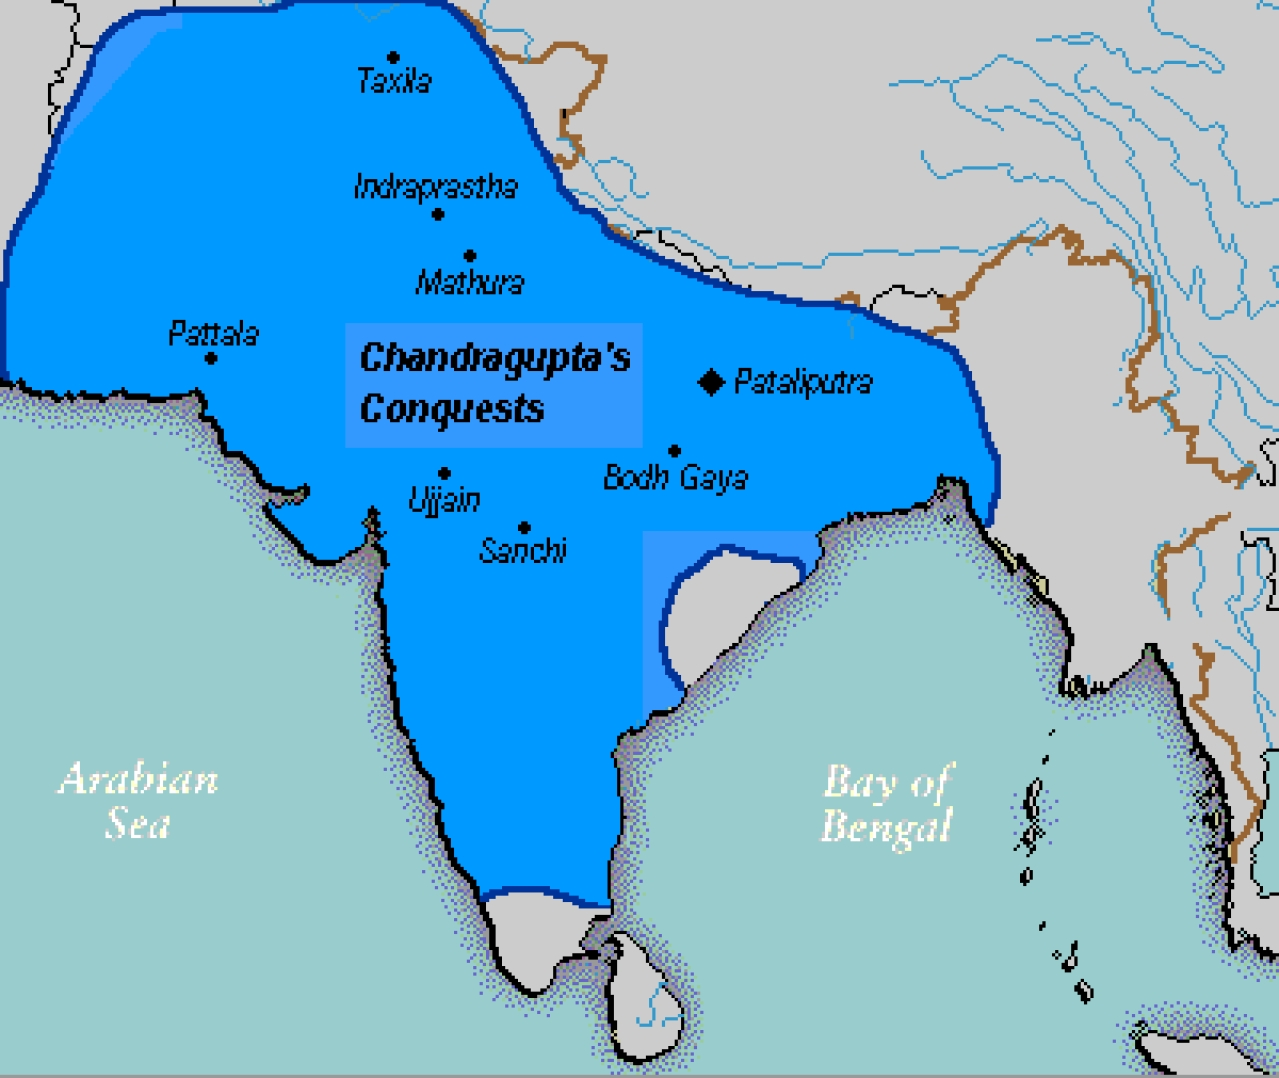 "Chandragupta Maurya's Empire according to Jain texts (Kulke, Hermann; Rothermund, Dietmar (2004), A History of India (4th ed.), <a href=""https://en.wikipedia.org/wiki/London"">London</a>: <a href=""https://en.wikipedia.org/wiki/Routledge"">Routledge</a>)"